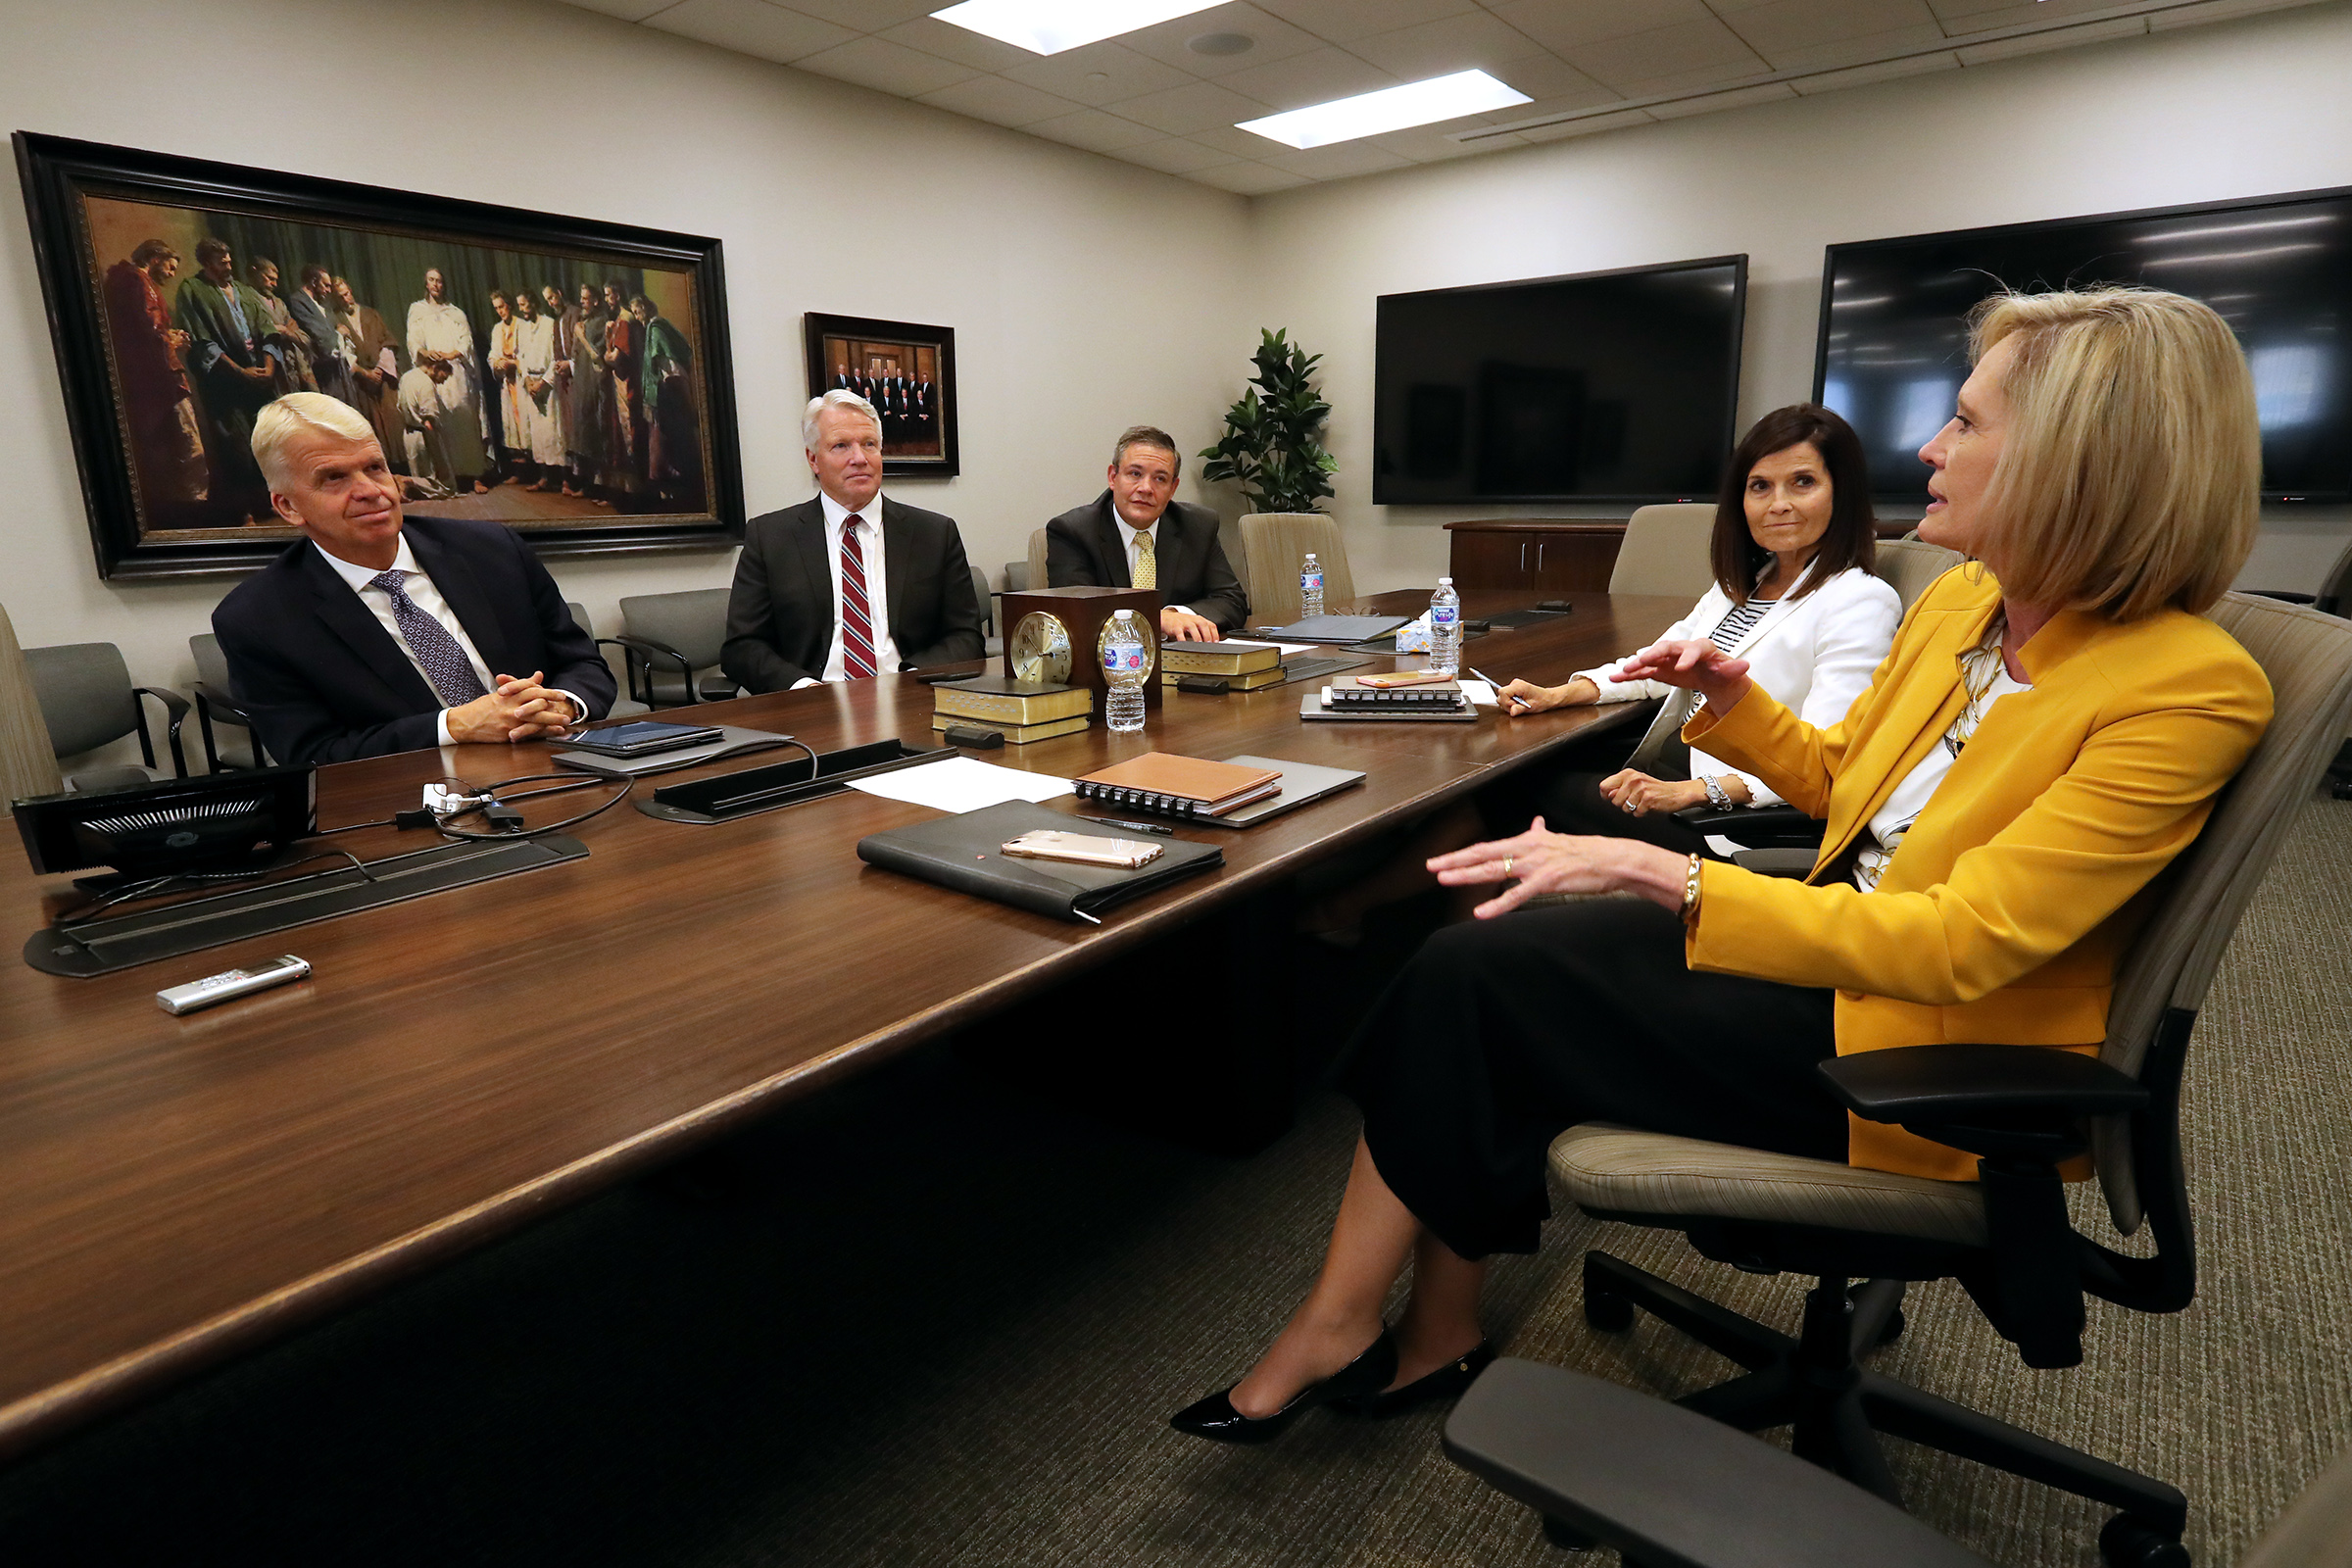 From left, Brother Stephen W. Owen, Brother Douglas B. Holmes and Brother M. Joseph Brough of the Young Men general presidency, join Sister Bonnie H. Cordon and Sister Becky Craven of the Young Women general presidency on Tuesday, Aug. 20, 2019, at the Church Office Building in Salt Lake City to discuss what the 2020 youth theme means and how it connects to the forthcoming Children and Youth program.